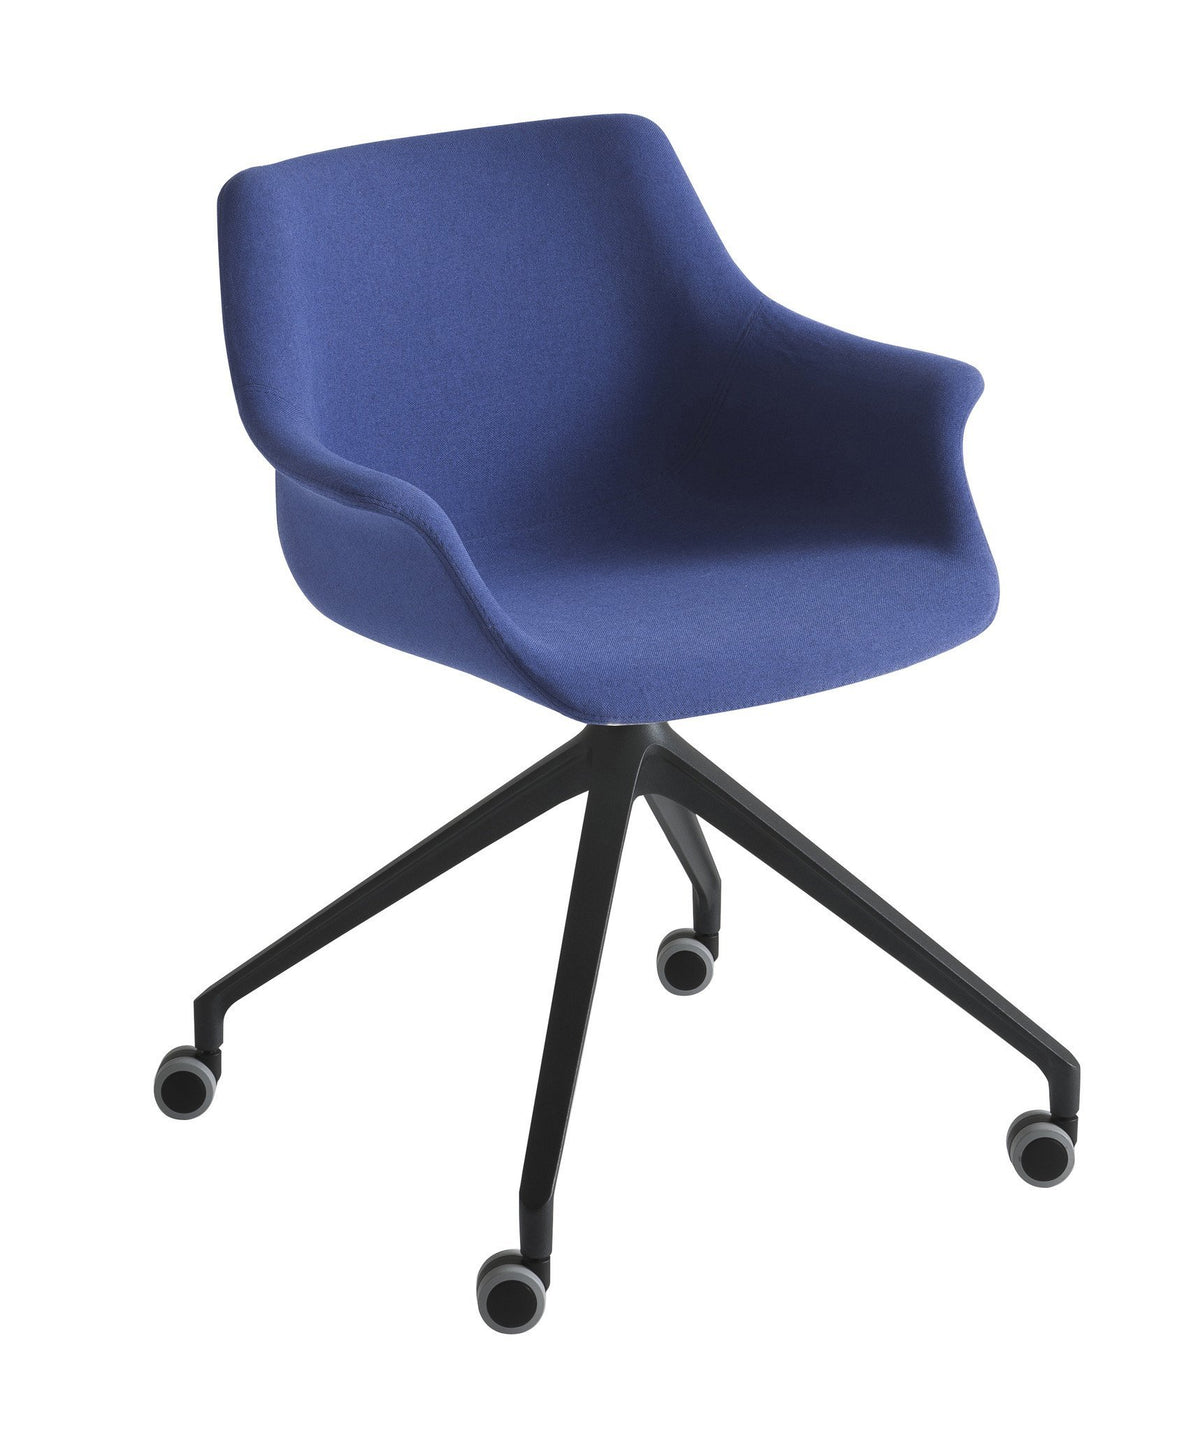 More Side Chair c/w Spider Wheels-Gaber-Contract Furniture Store